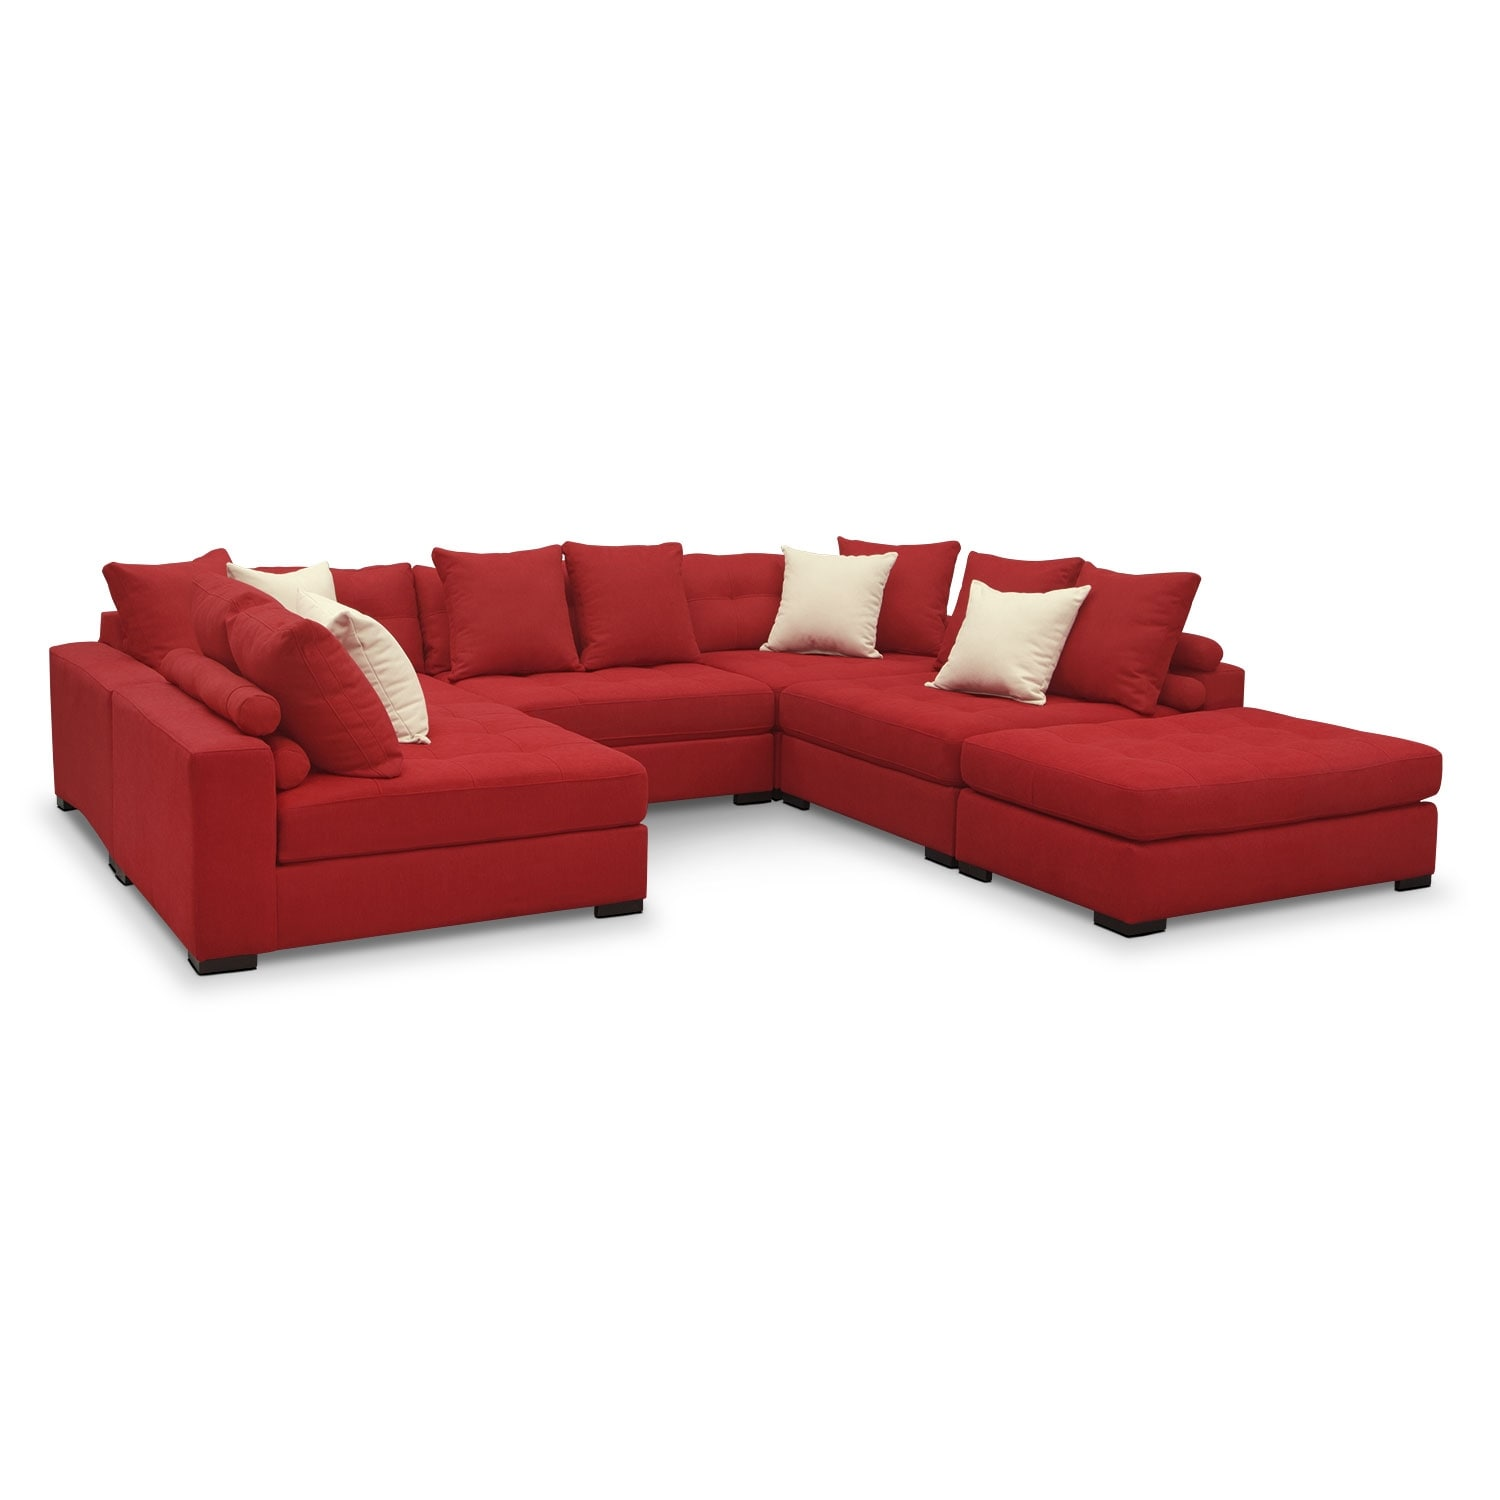 venti 6 piece sectional red american signature furniture With red sectional sofa american signature